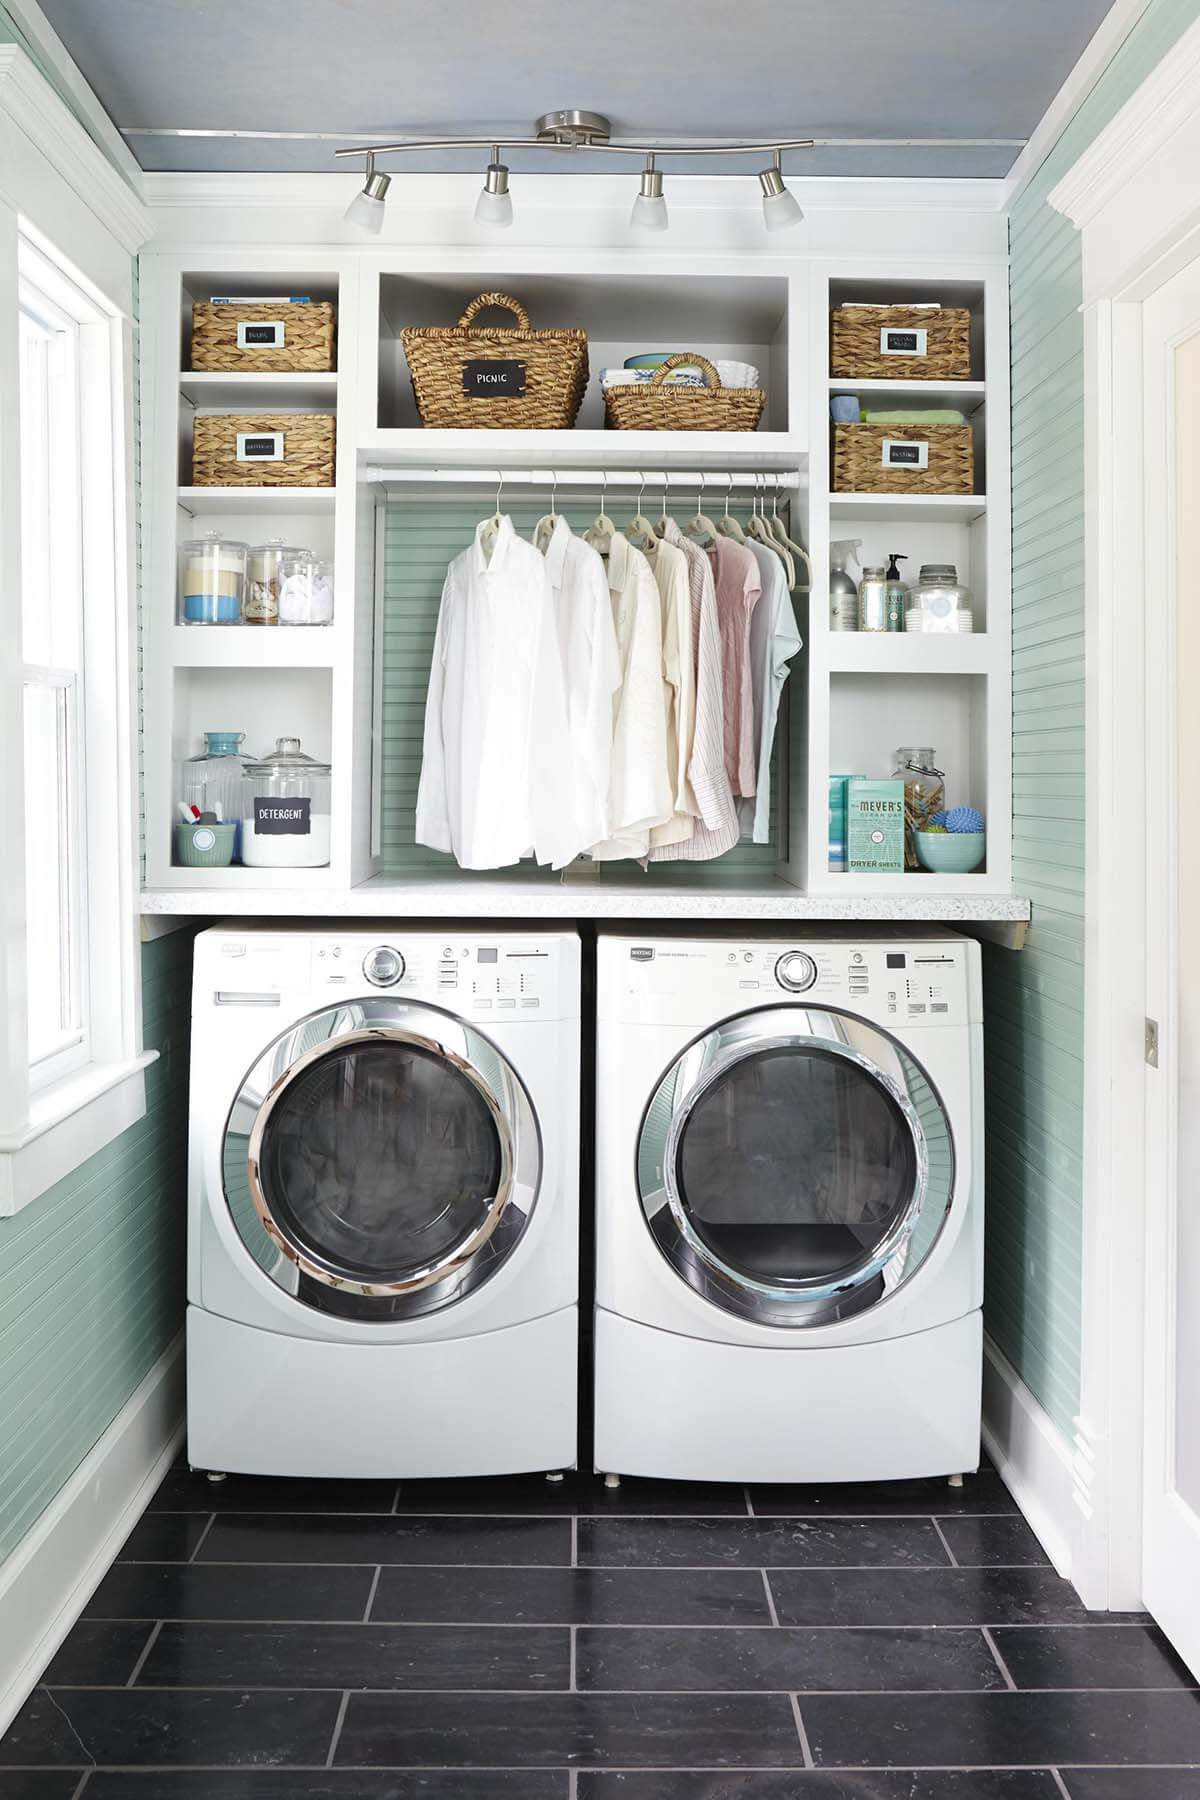 Best ideas about Laundry Room Designs . Save or Pin 28 Best Small Laundry Room Design Ideas for 2019 Now.